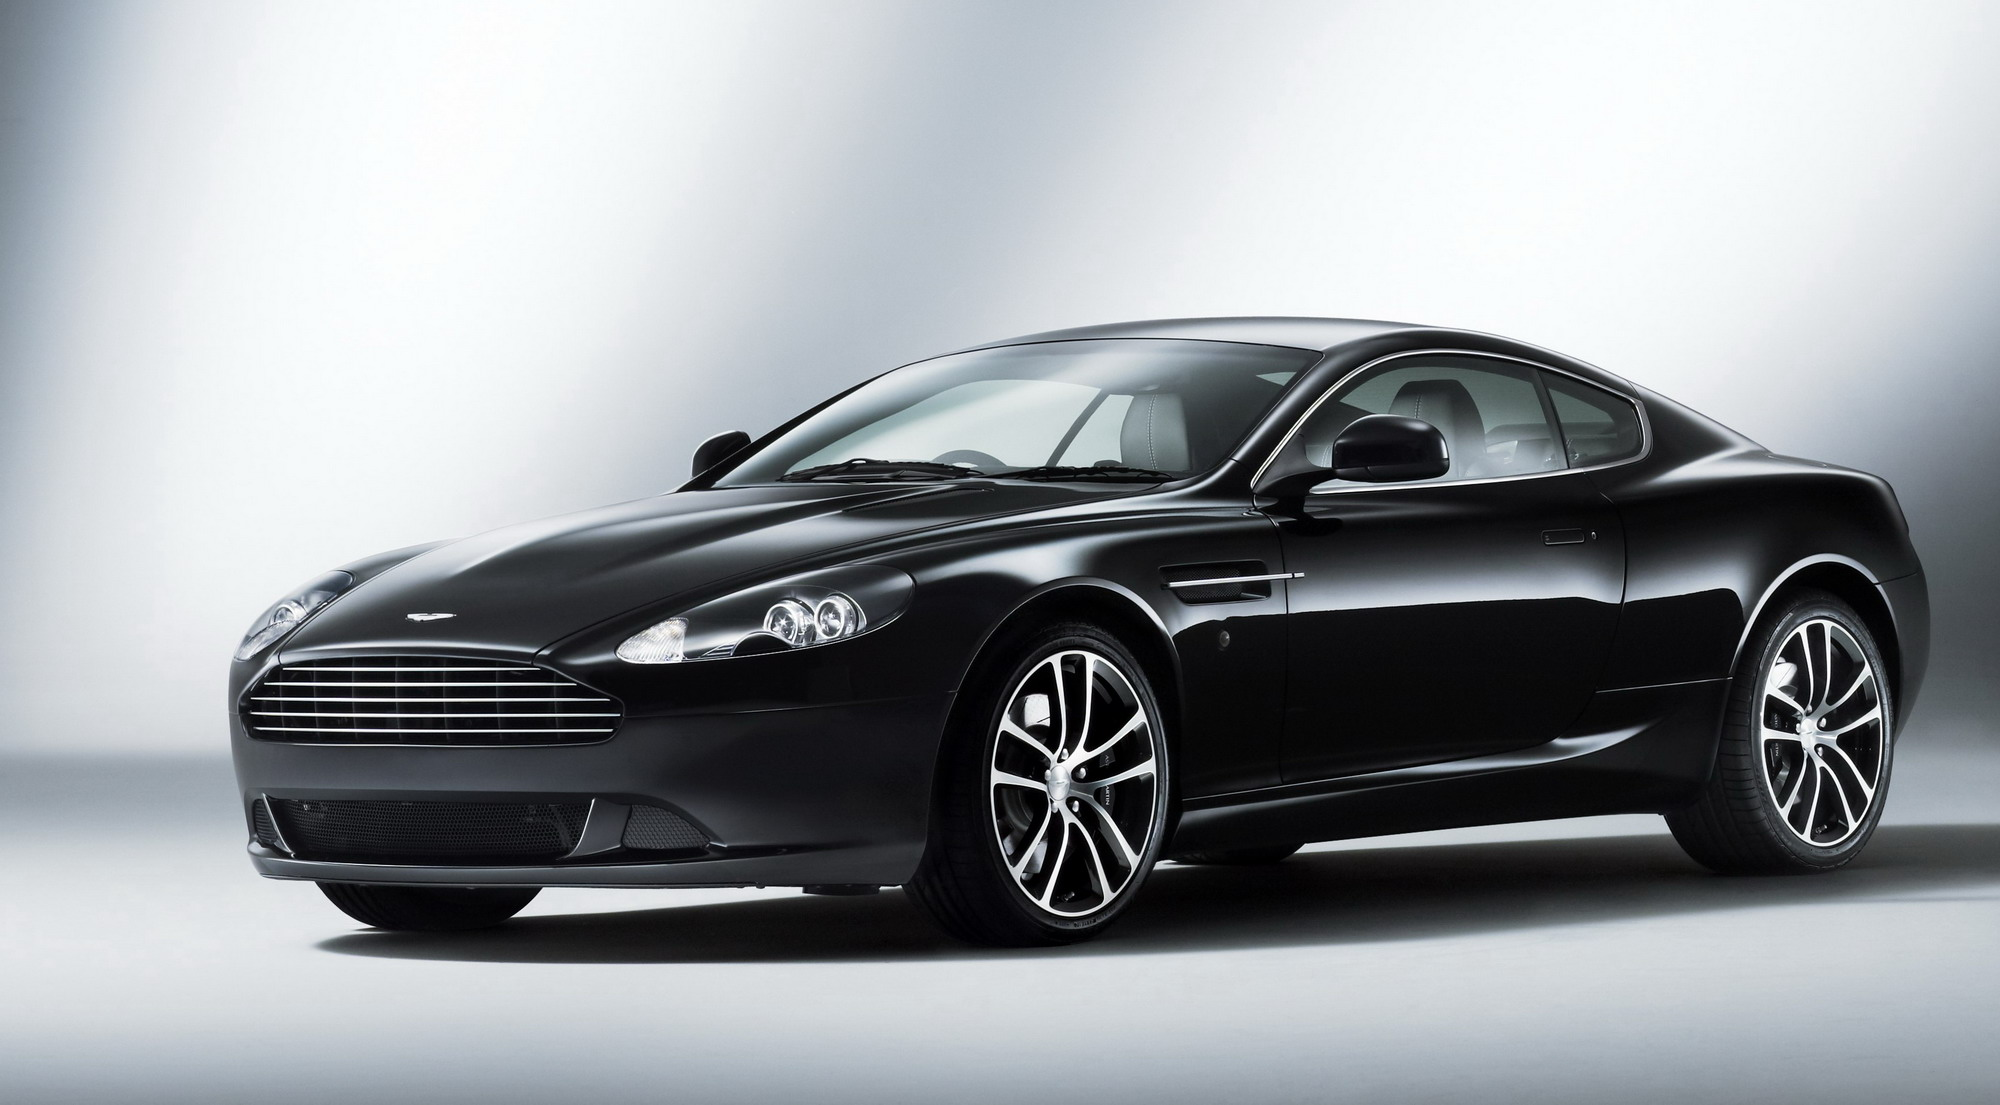 2011 Aston Martin Db9 Carbon Black Top Speed